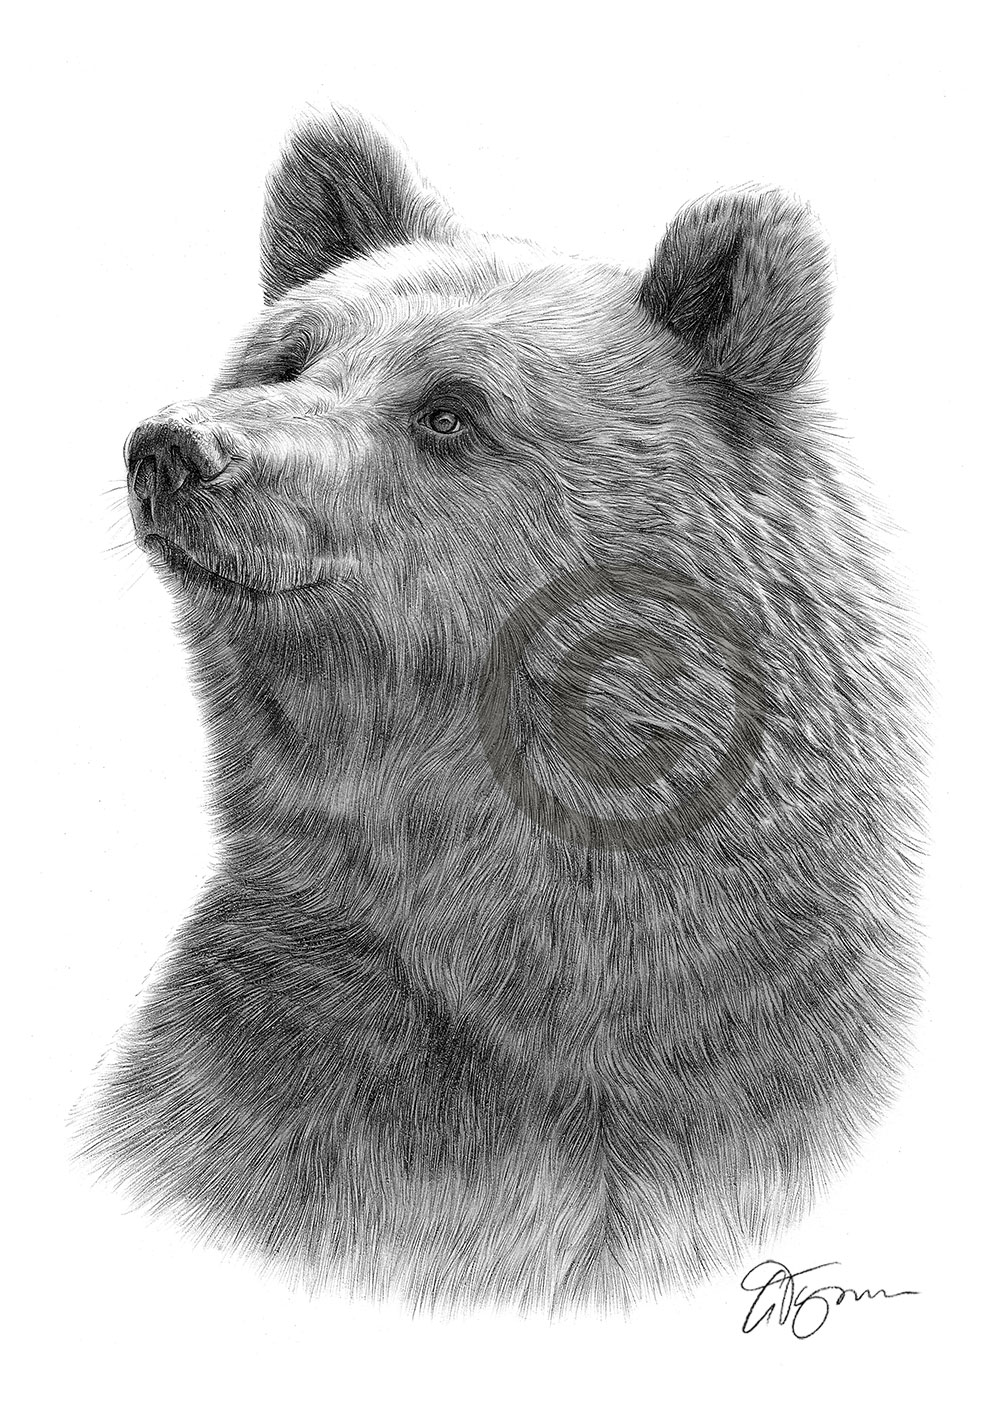 grizzly bear drawings beautiful grizzly bear drawing with images bear grizzly drawings bear